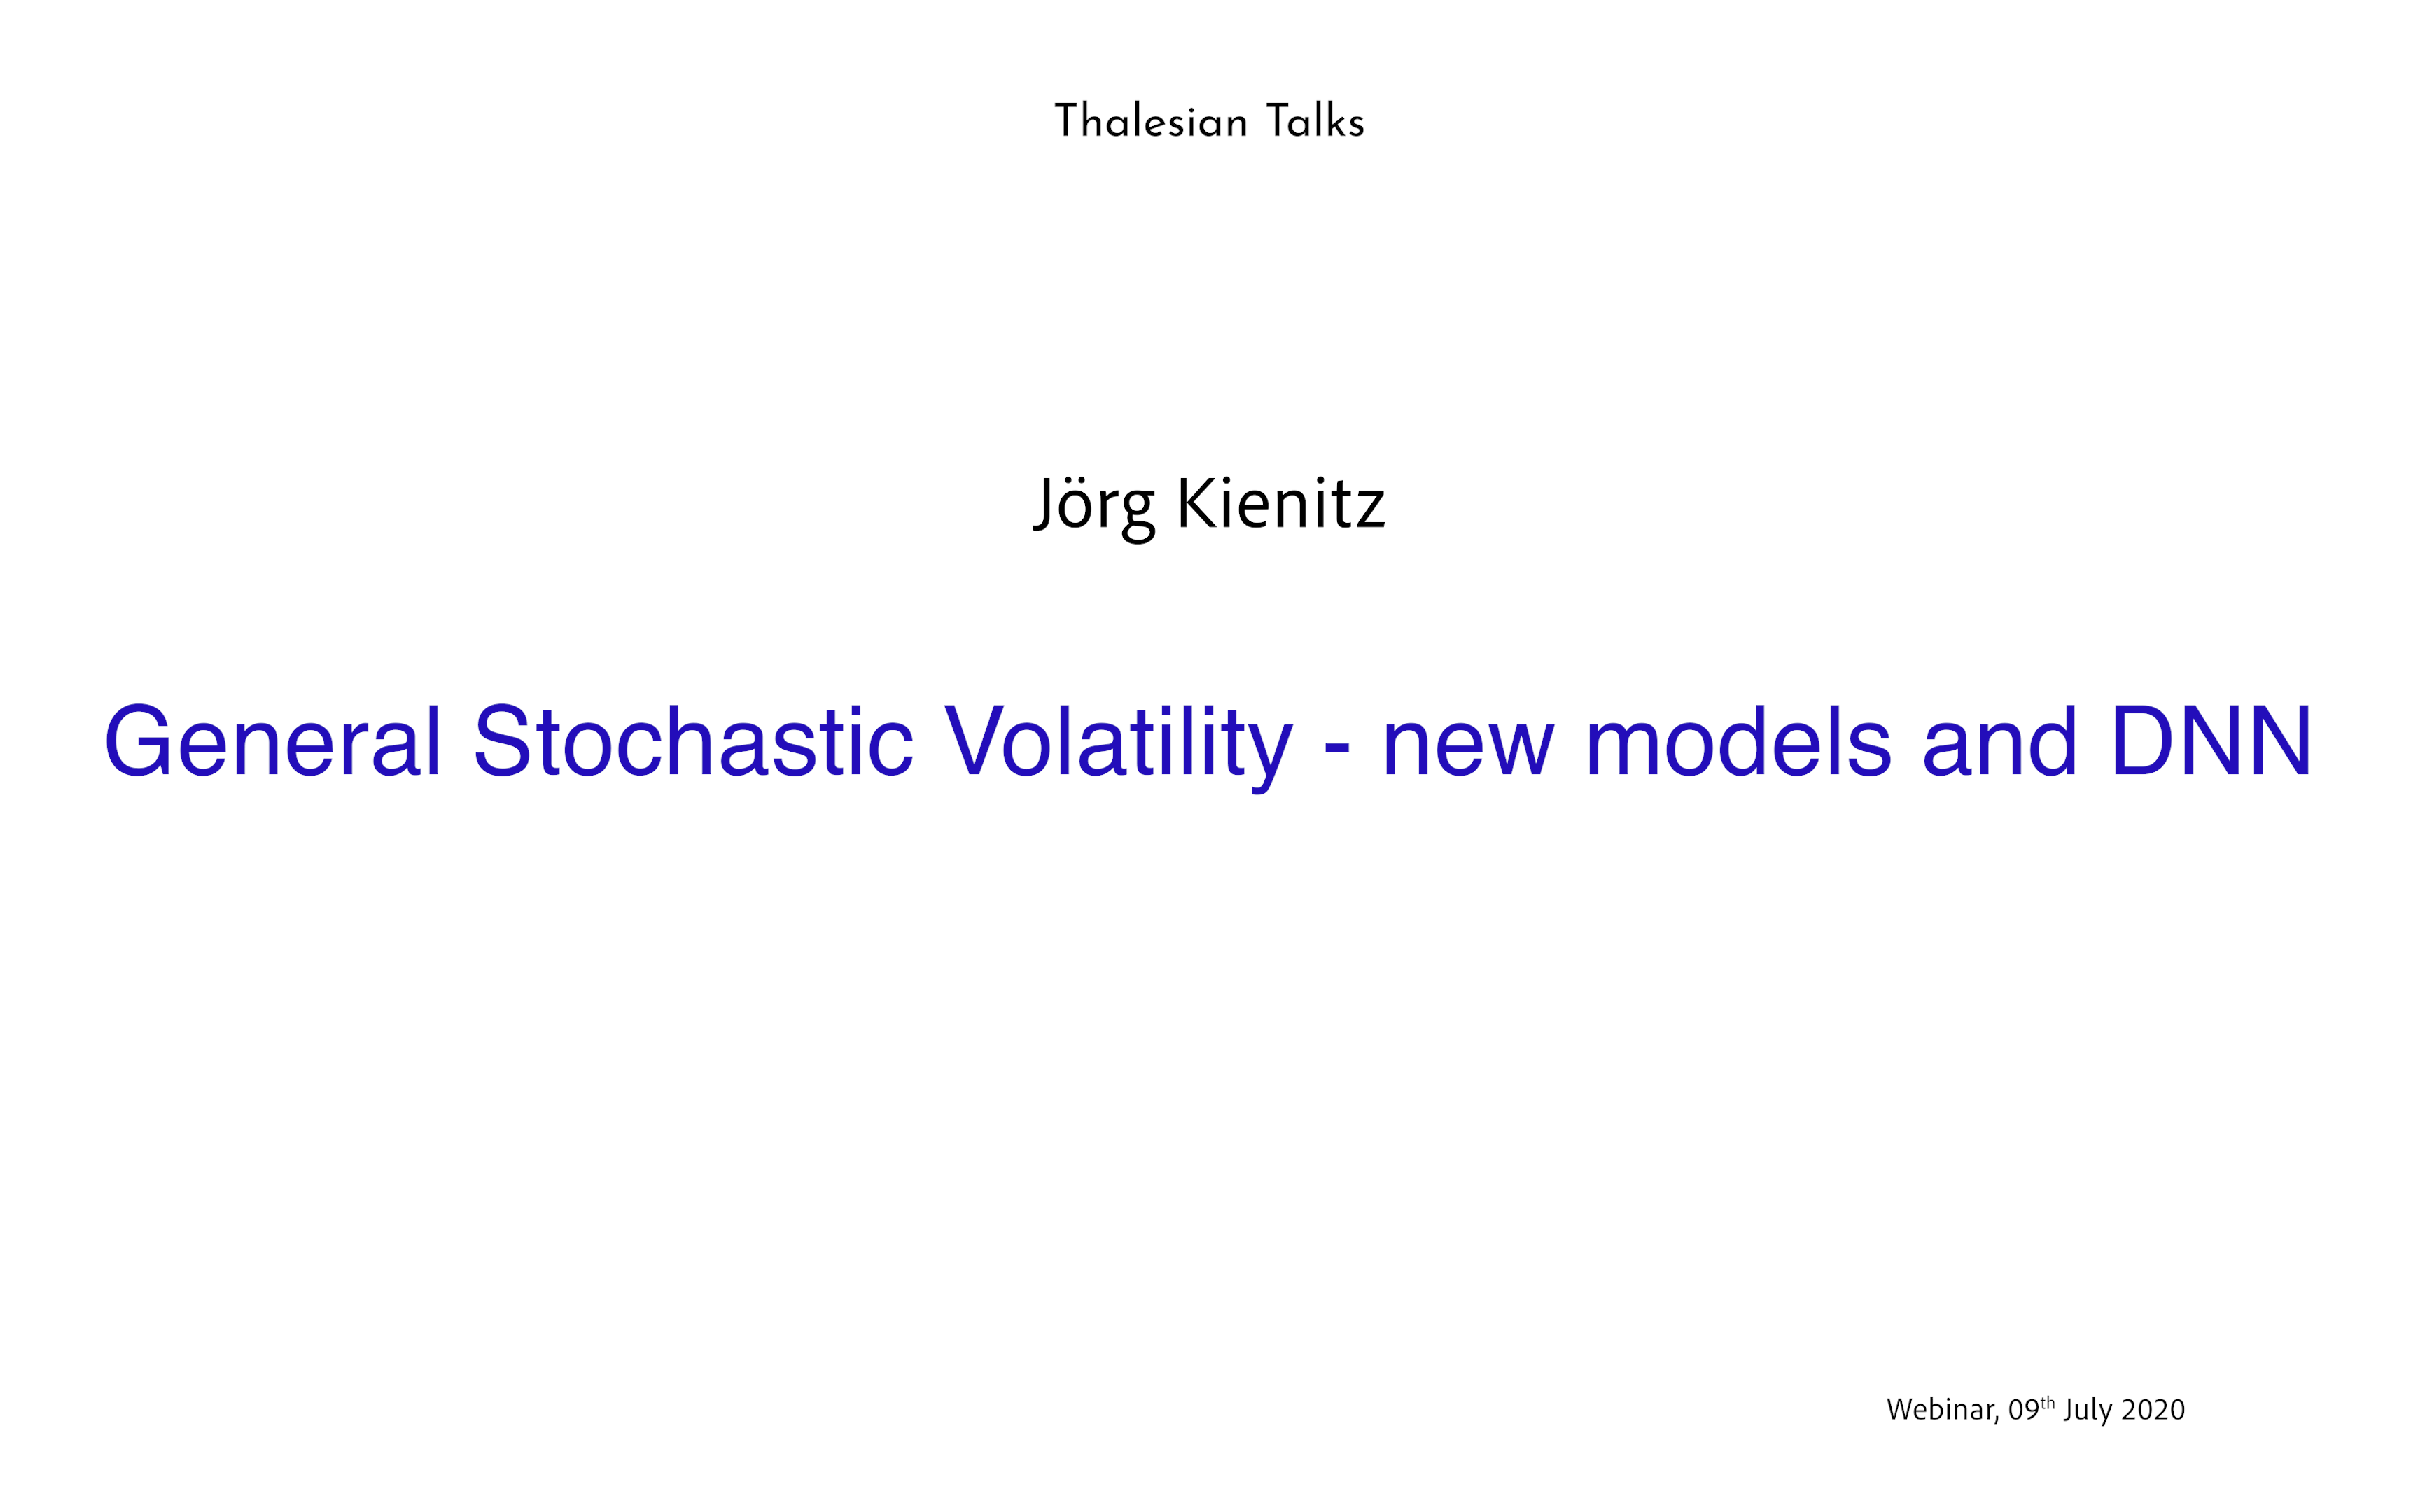 Jörg Kienitz: General Stochastic Volatility – new models and DNN